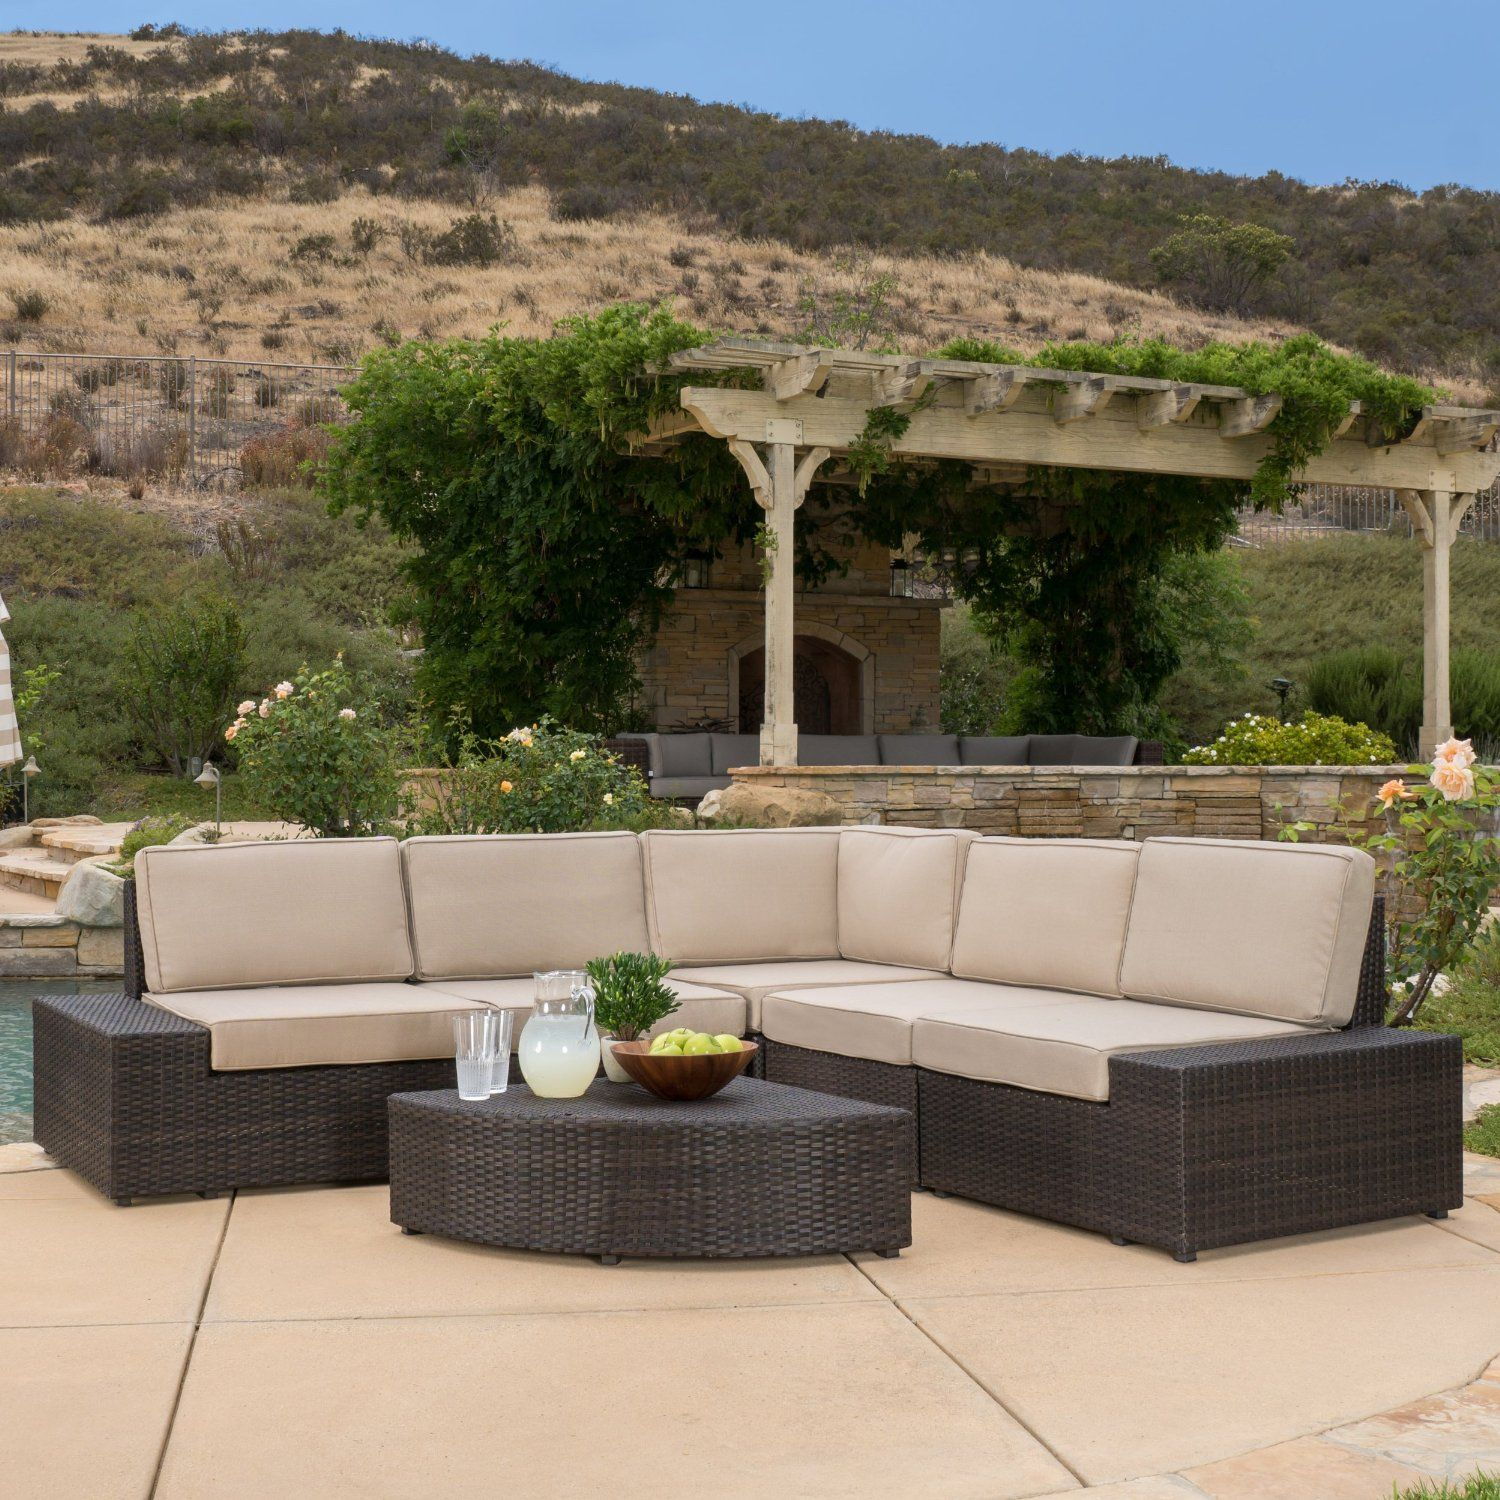 Amazon Reddington Outdoor Brown Wicker Sectional Seating Sofa Set with